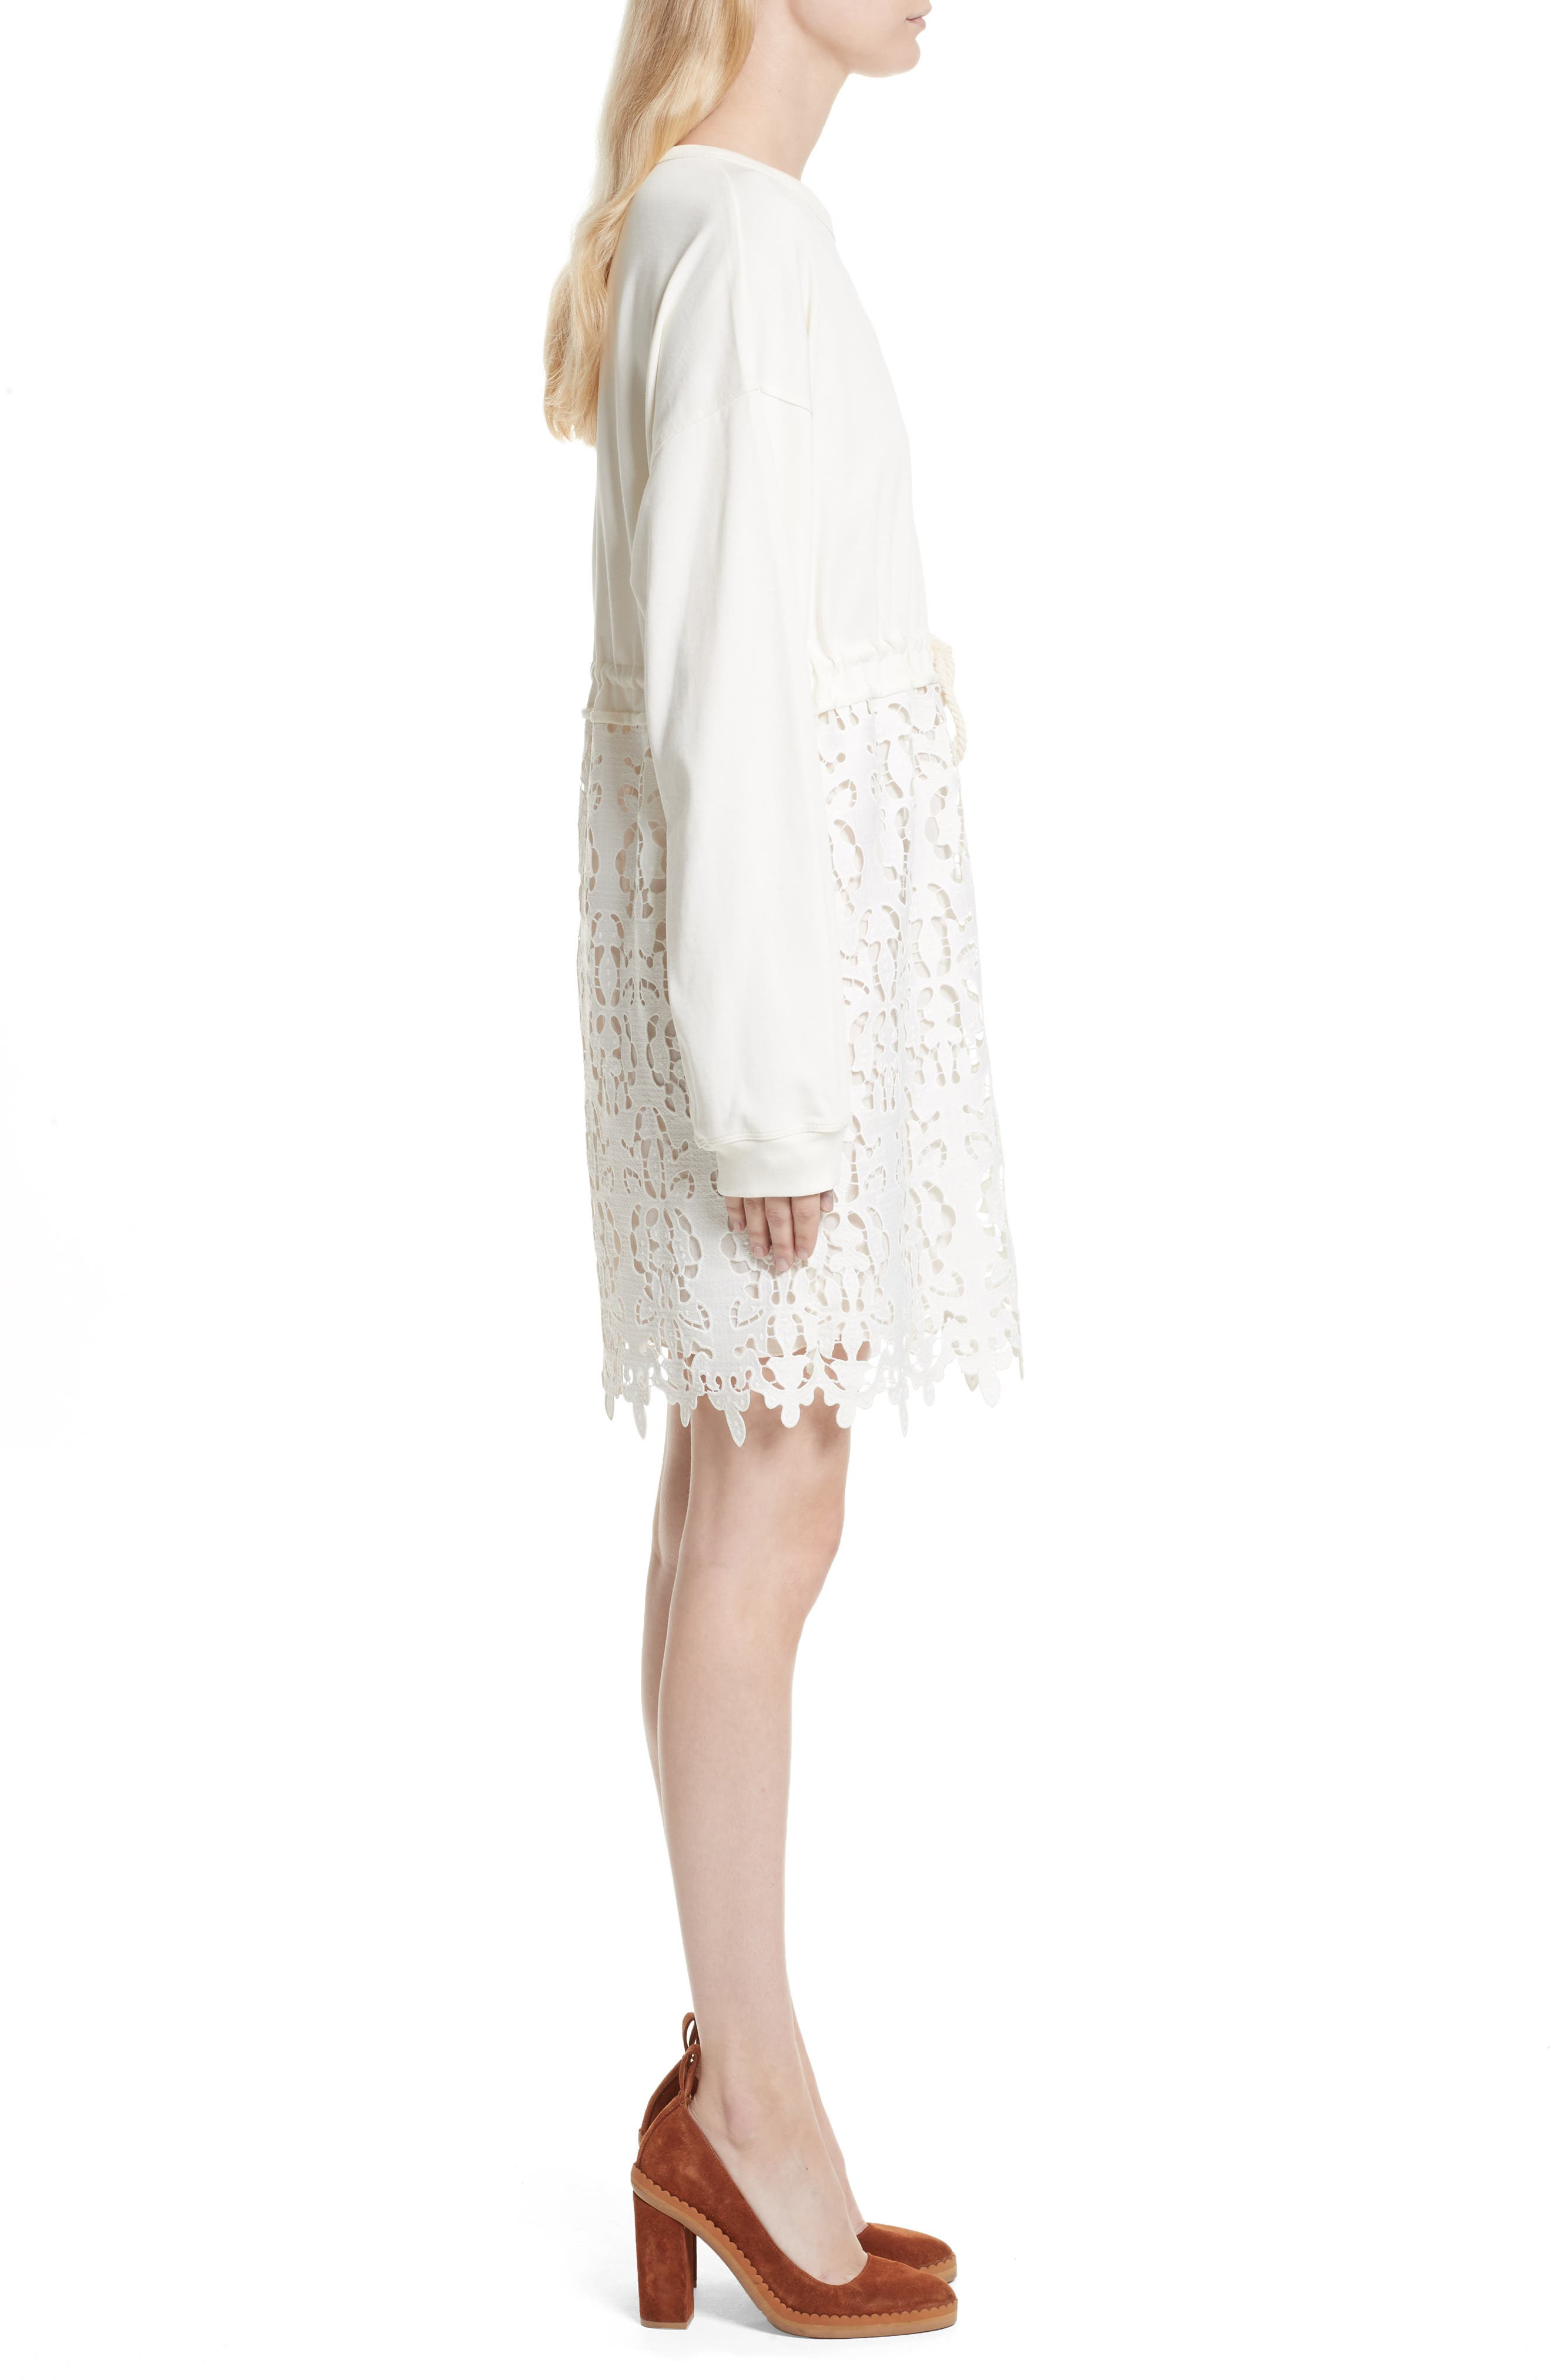 SEE BY CHLOÉ,                             Lace Skirt Sweatshirt Dress,                             Alternate thumbnail 3, color,                             101